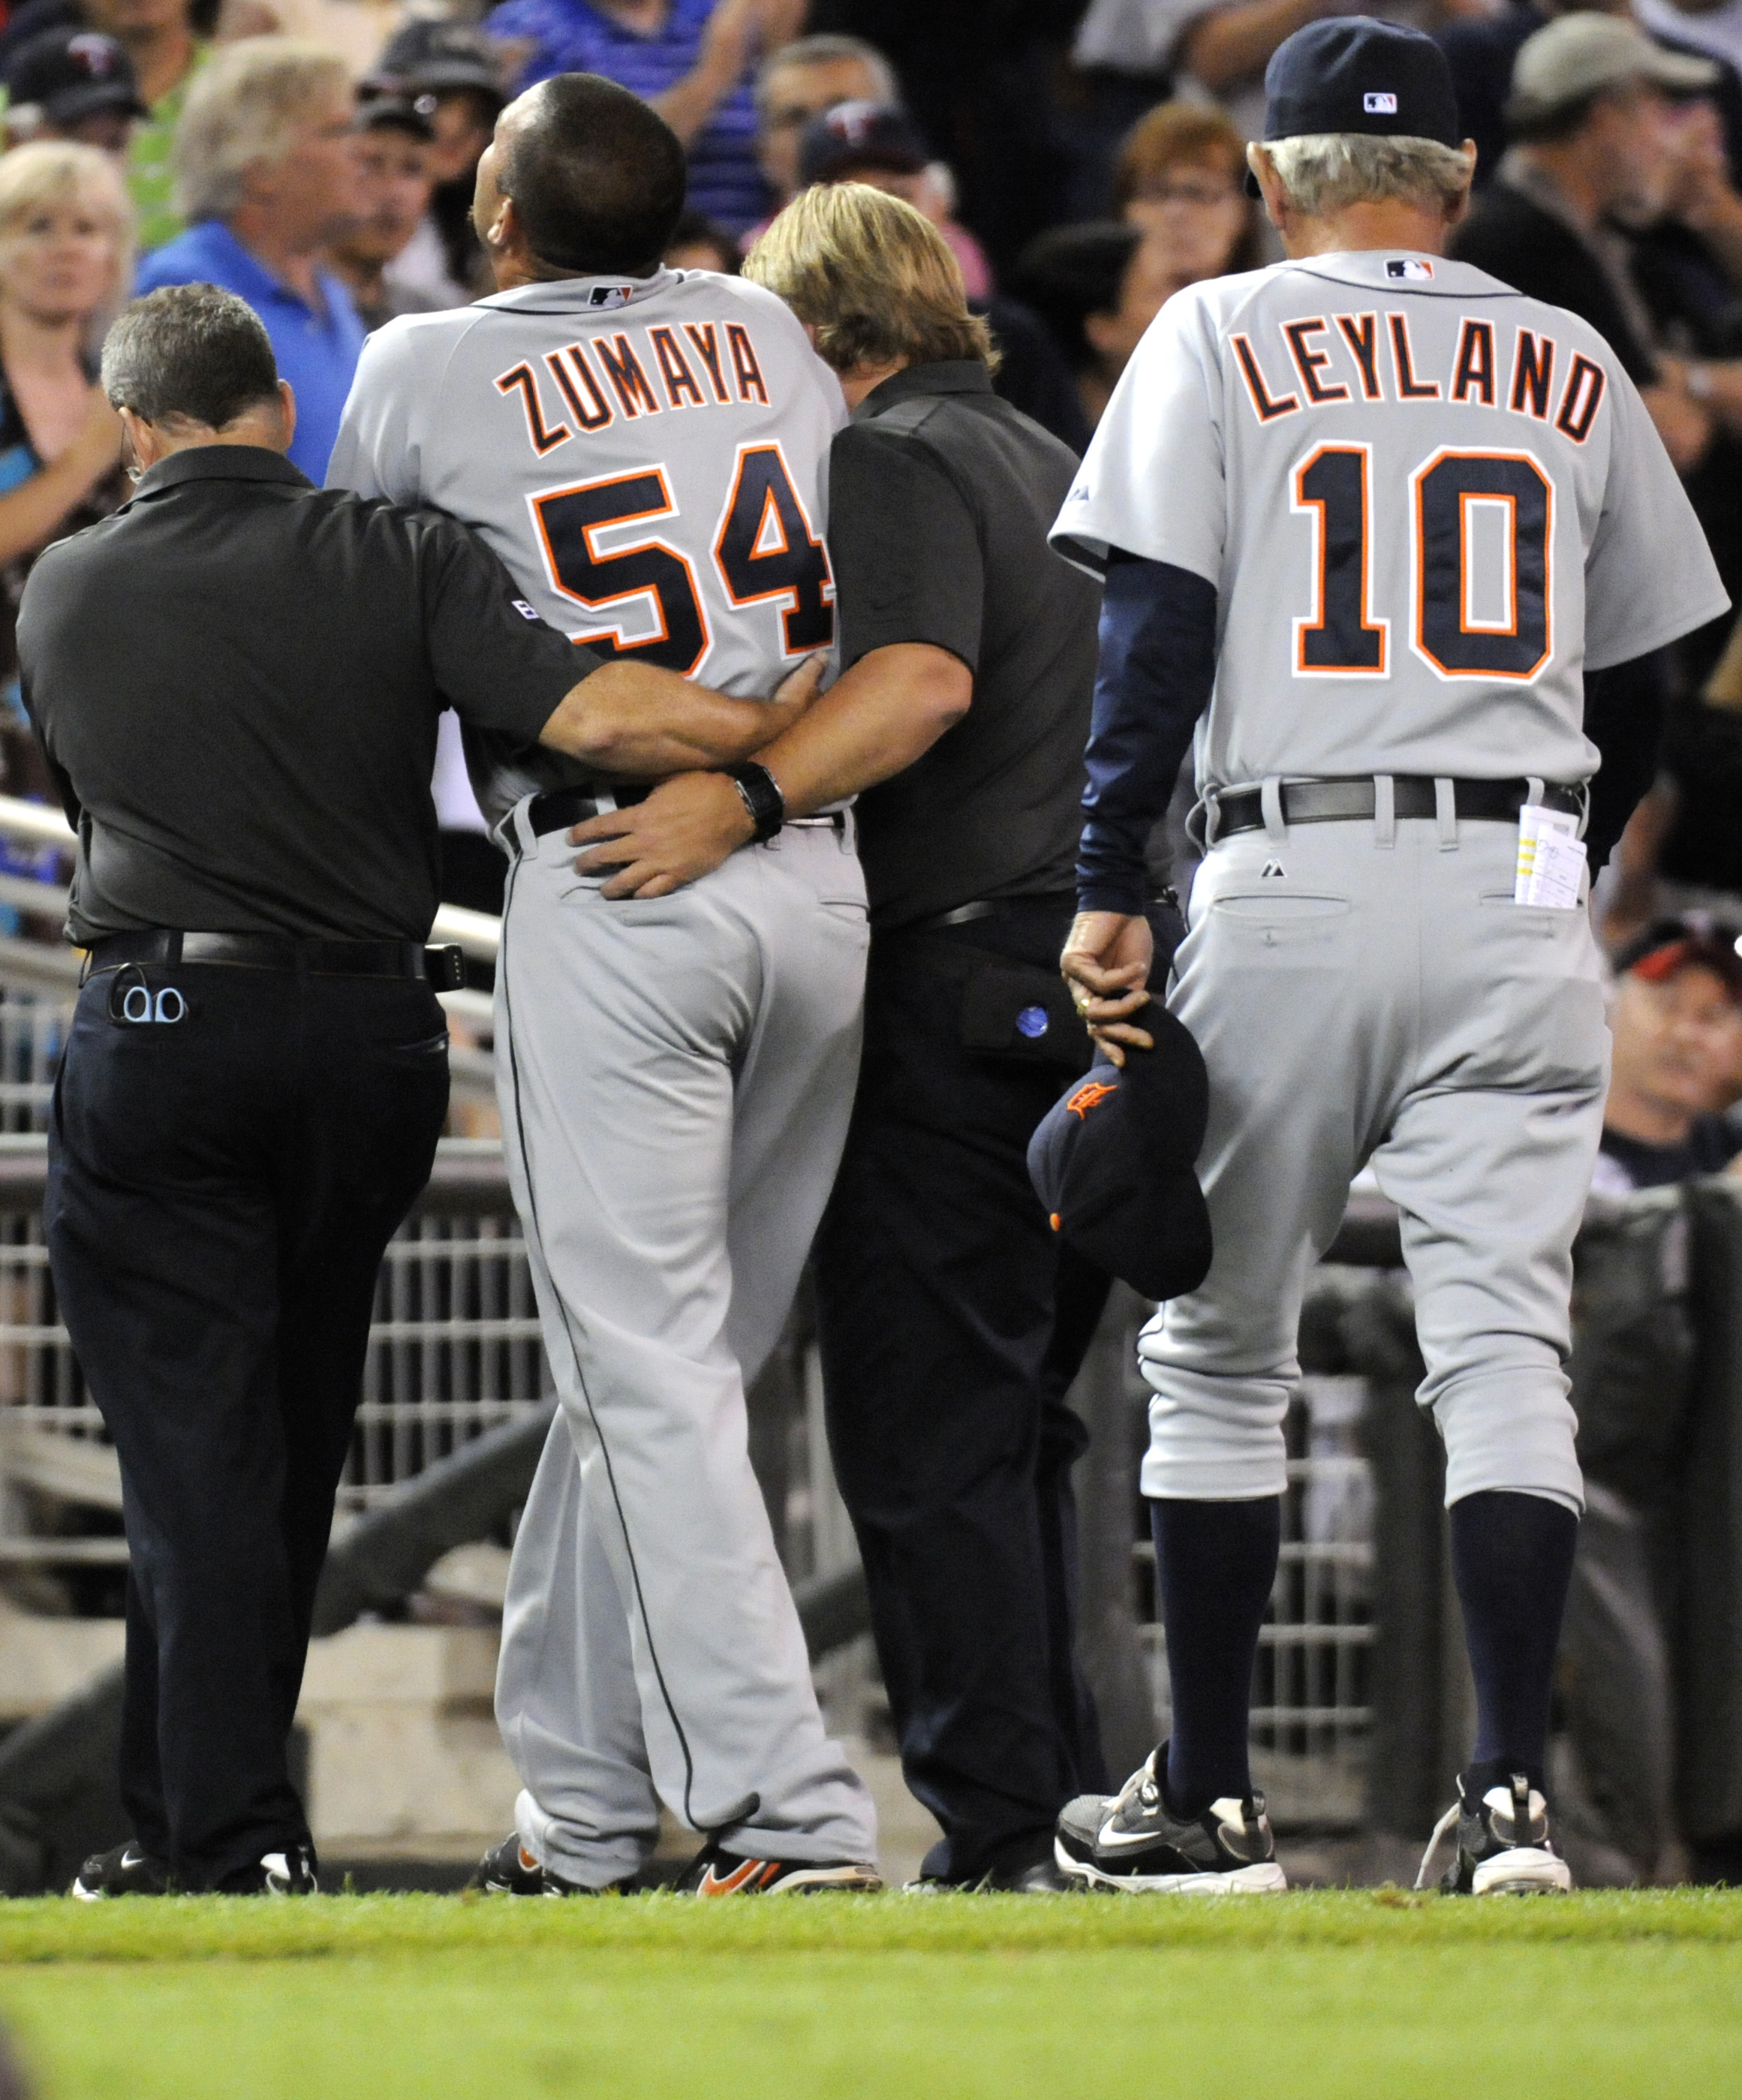 MINNEAPOLIS, MN - JUNE 28:  Manager Jim Leyland #10 of the Detroit Tigers follows Joel Zumaya #54 of the Detroit Tigers, with the assistance of trainers, off the field after falling to the ground clutching his elbow in the eighth inning against the Minnes